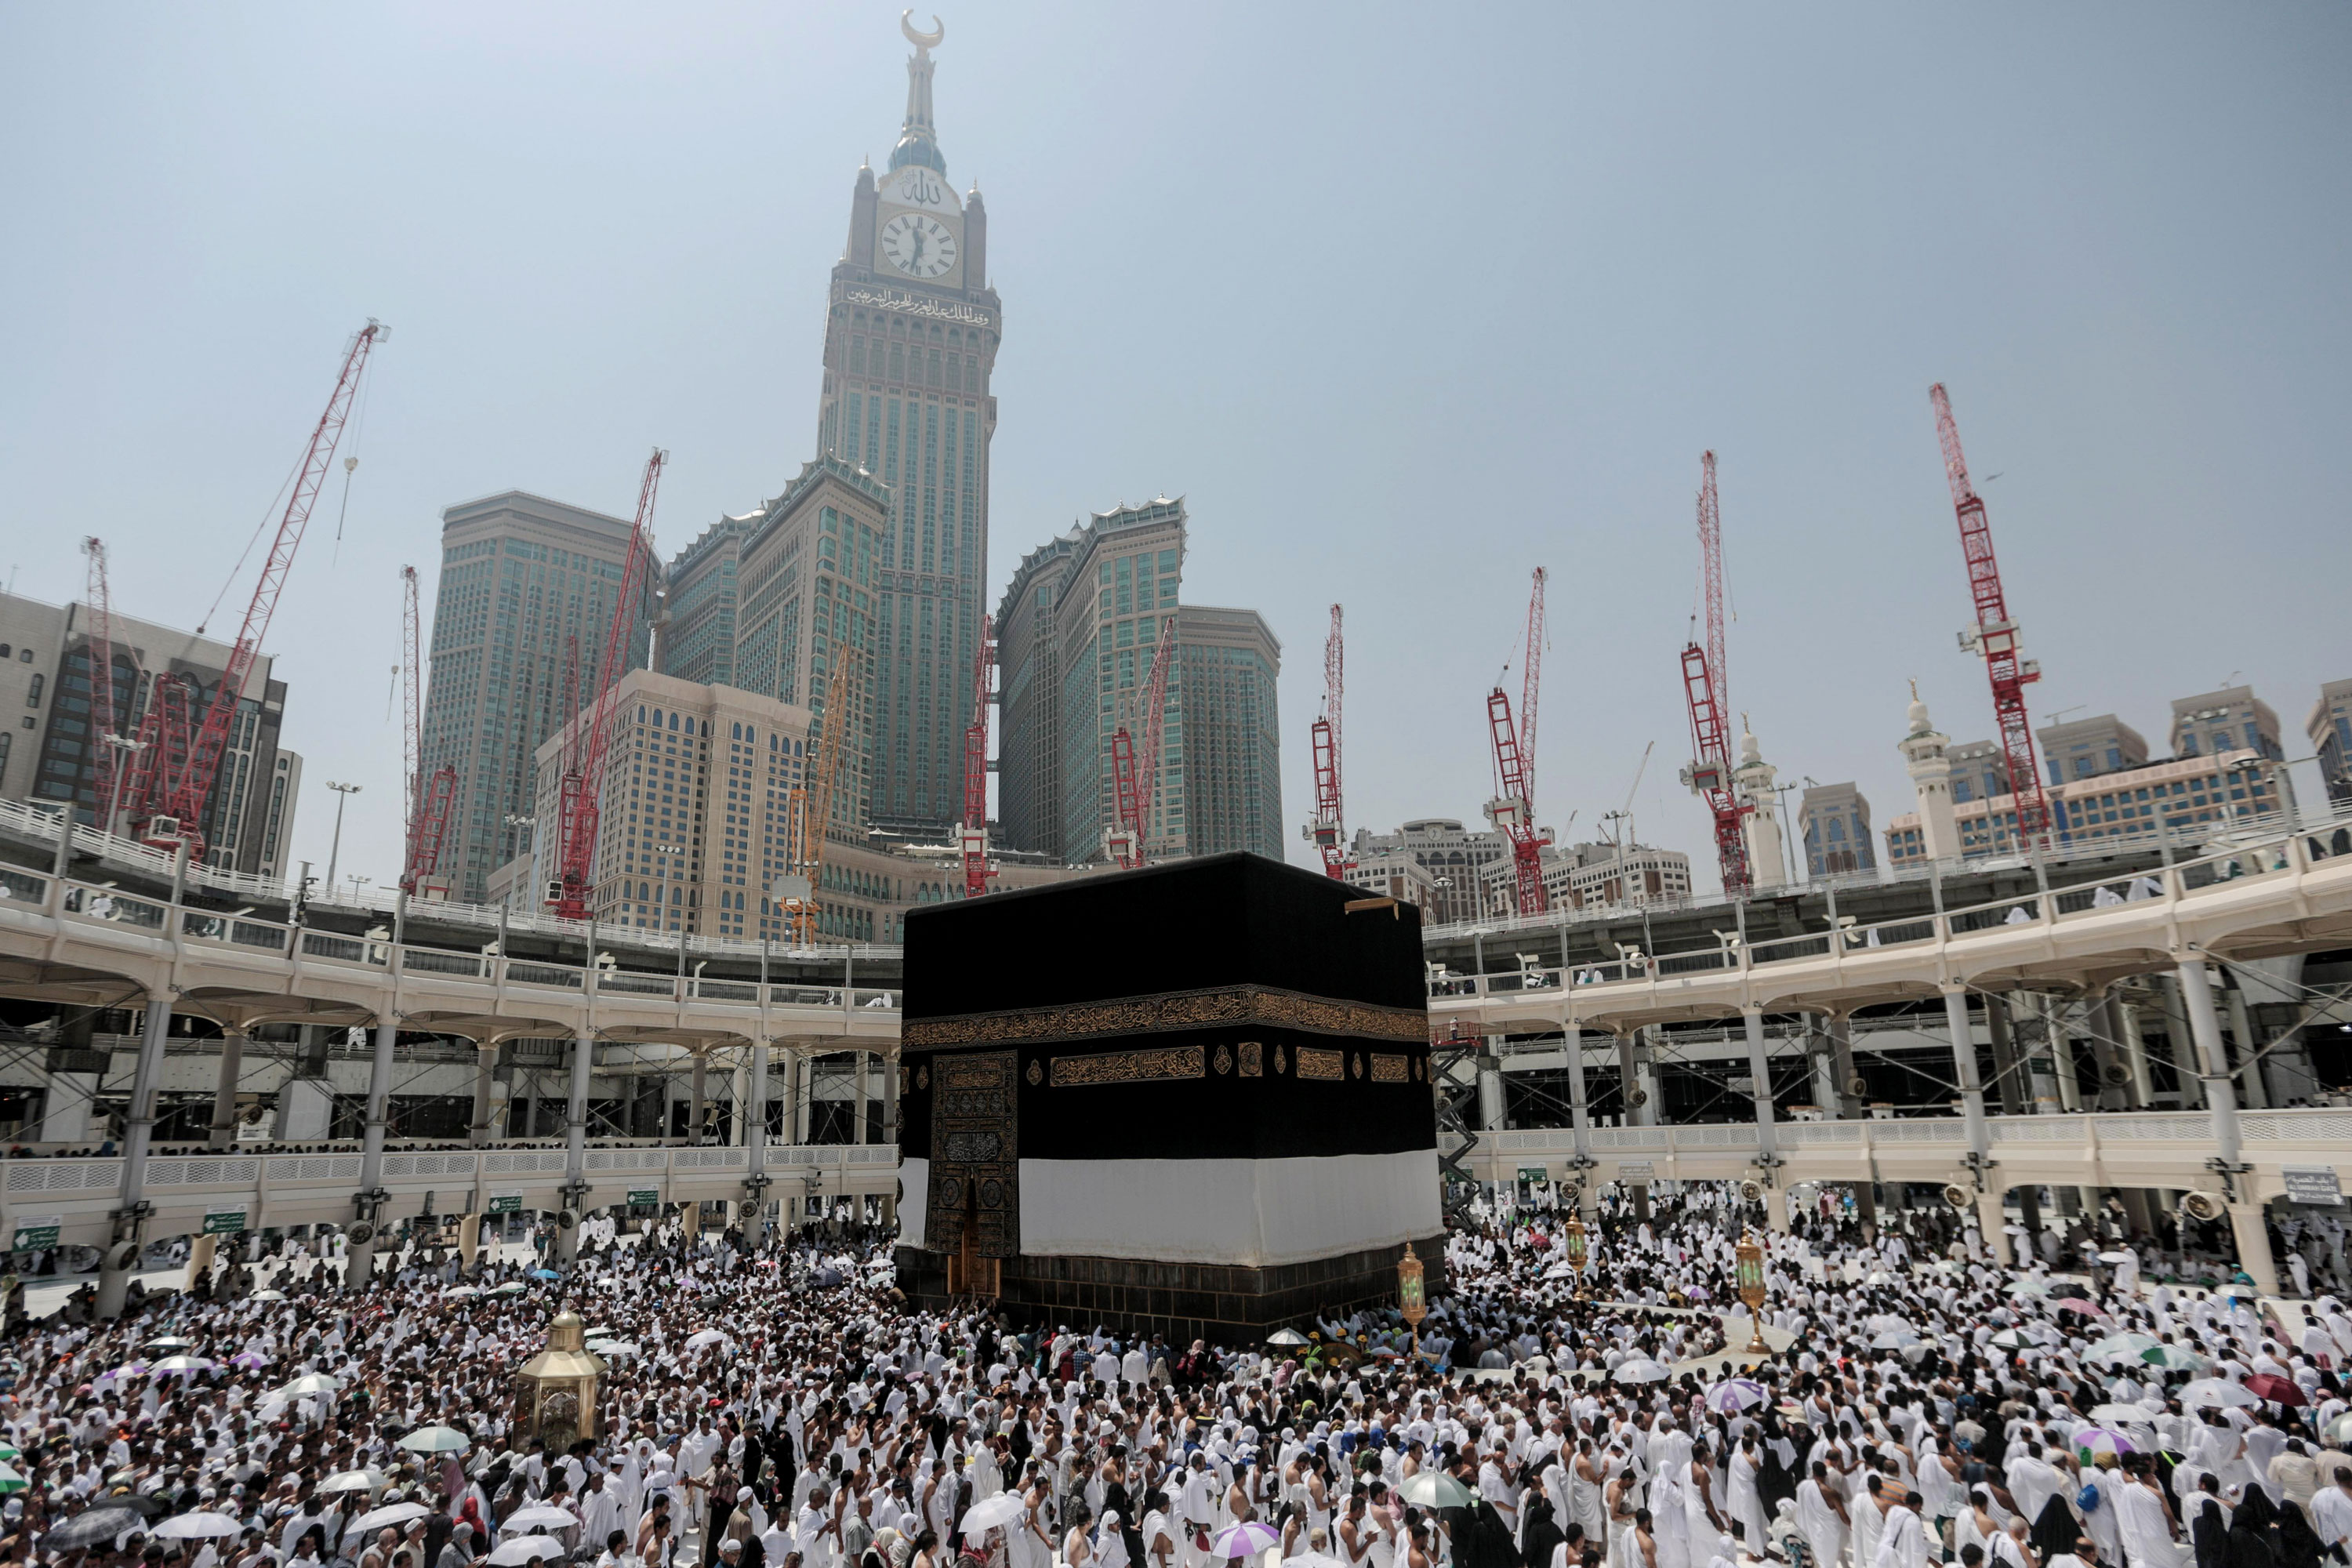 More than 2 million Muslims have begun the first rites of the annual Hajj pilgrimage, which draws people from around the world to Mecca and areas around it to perform a series of rituals and prayers aimed at ultimately erasing past sins. [Mosa ab Elshamy/AP]